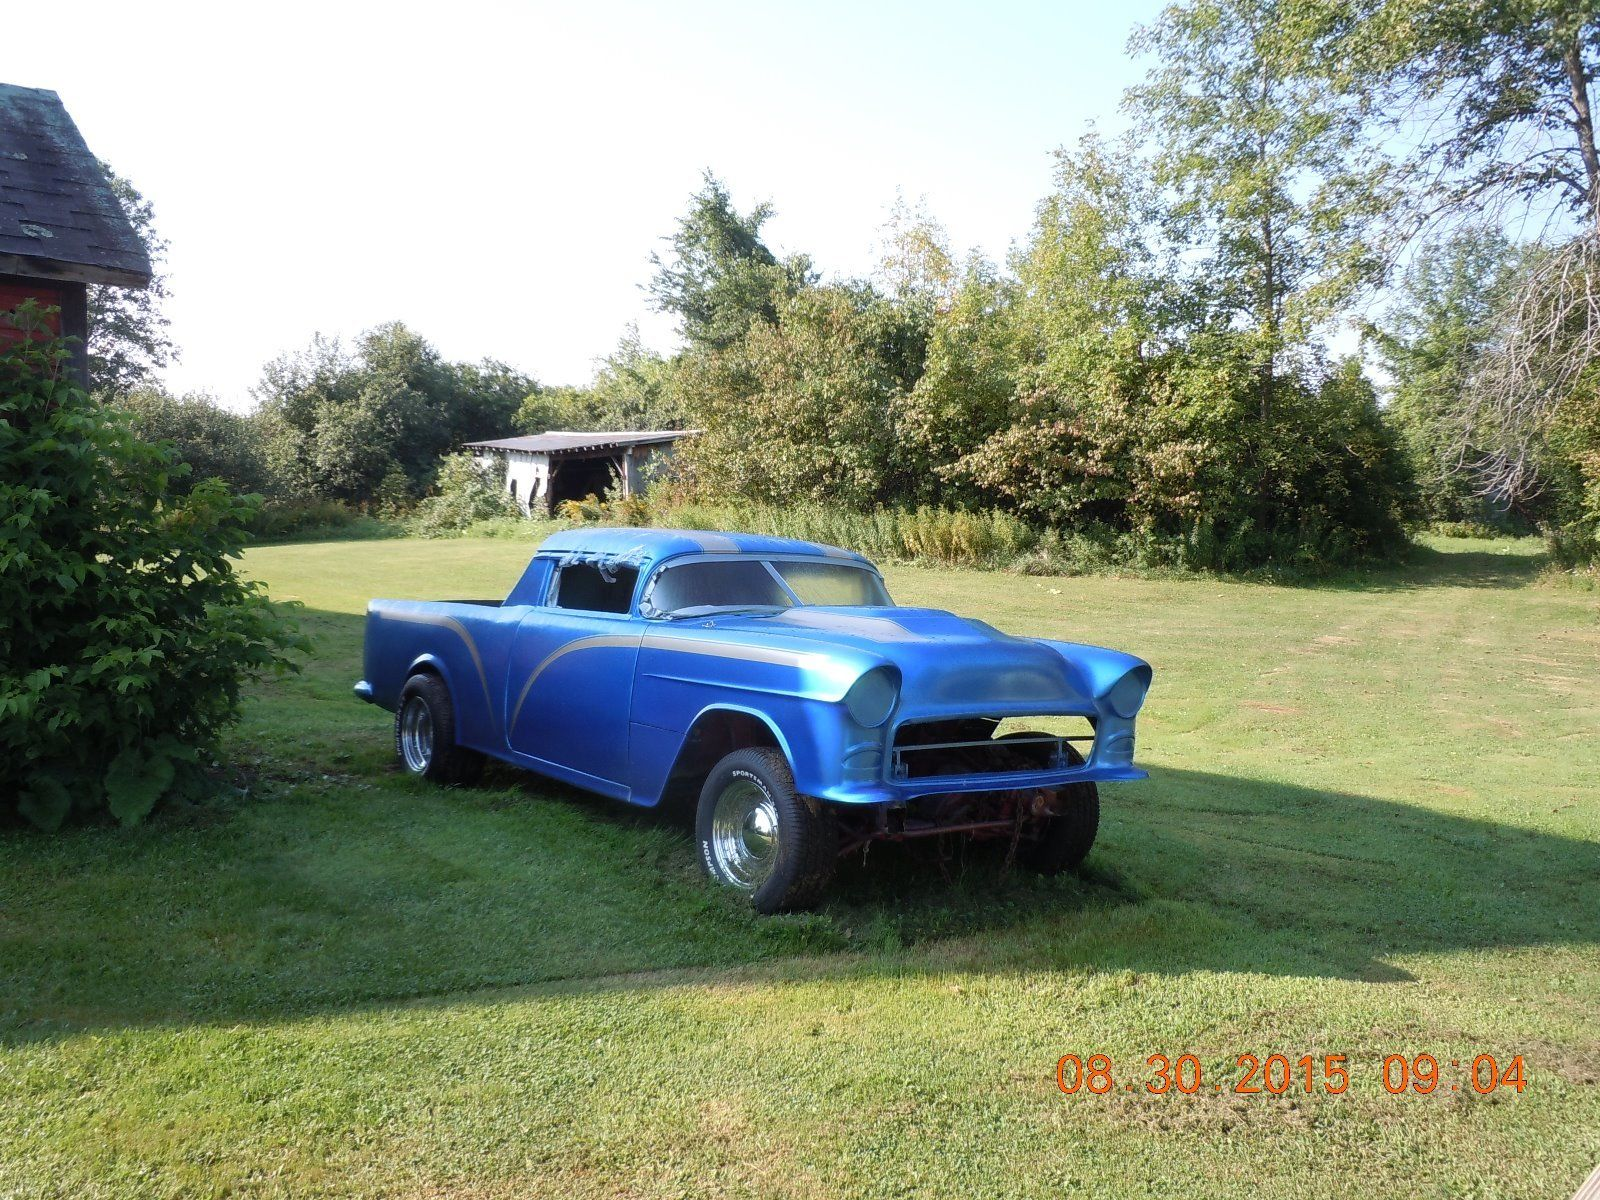 chevy project cars Hotrod project 75%complete running fresh built procharged big block chevy 454 sounds amazing duel 2 chamber flowmasters and the procharger sounds really spectacular.